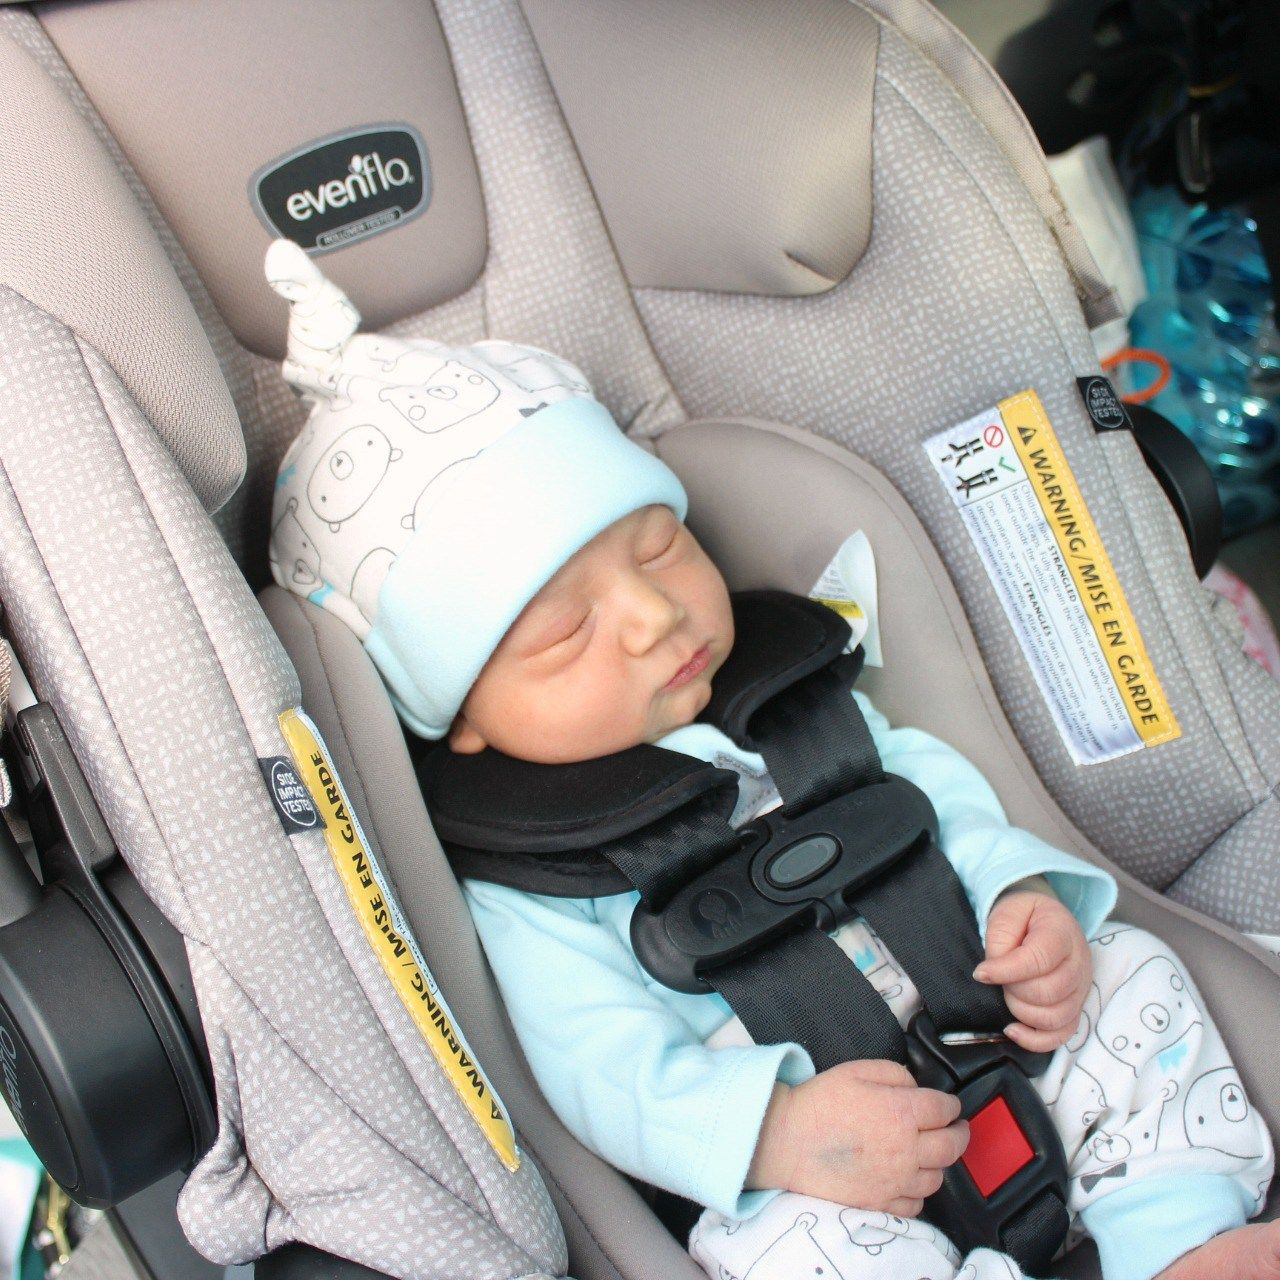 Evenflo Pivot Travel System Review Laura Co Baby Car Seat Carseat Collaboration